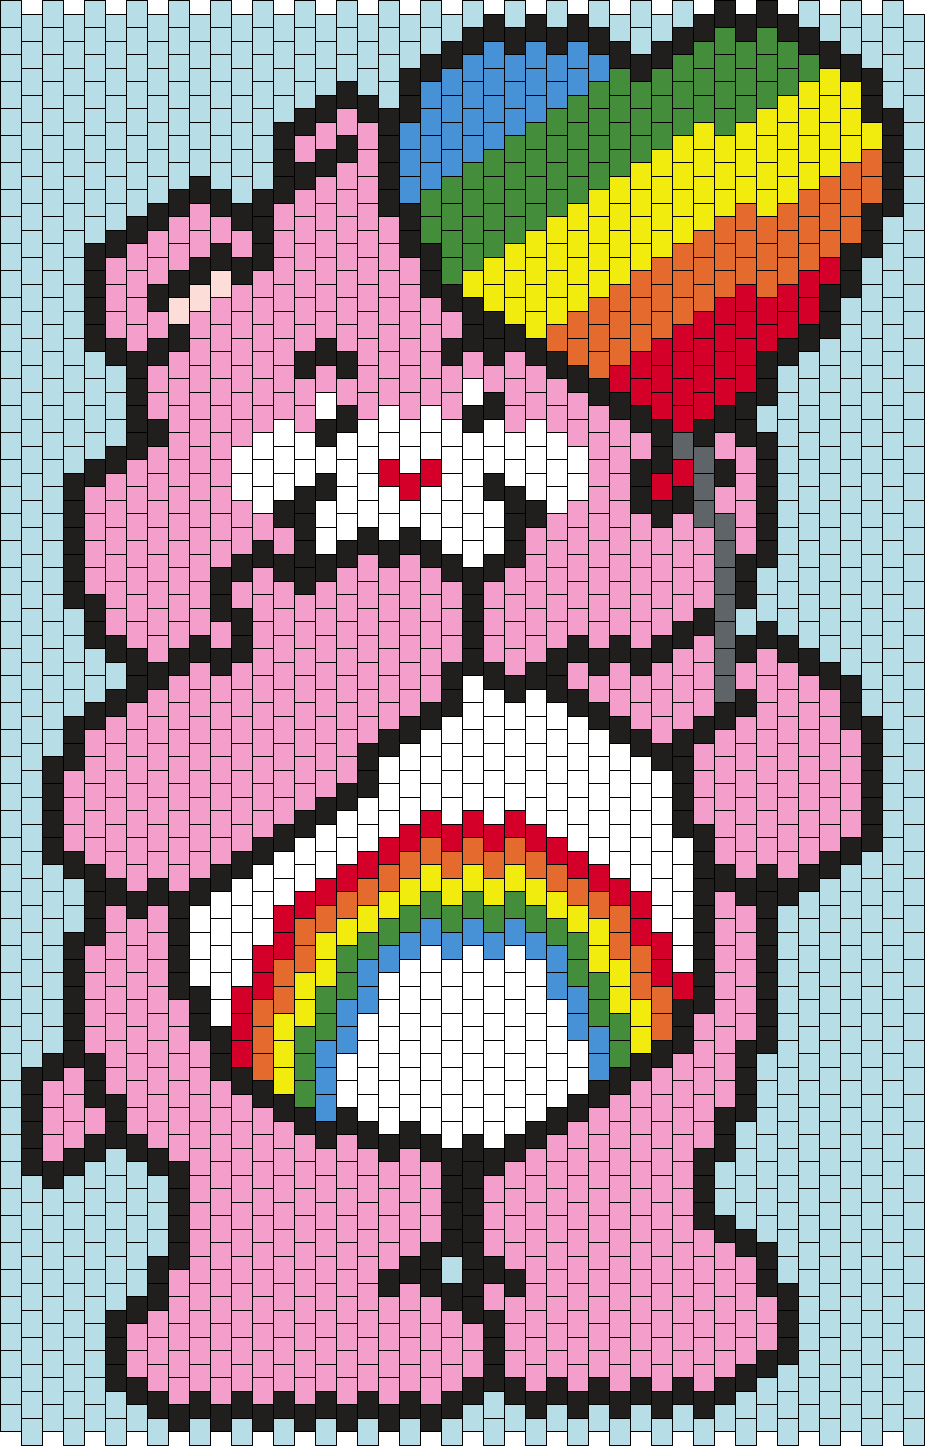 Cheer_Bear_from_Care_Bears_smaller_version